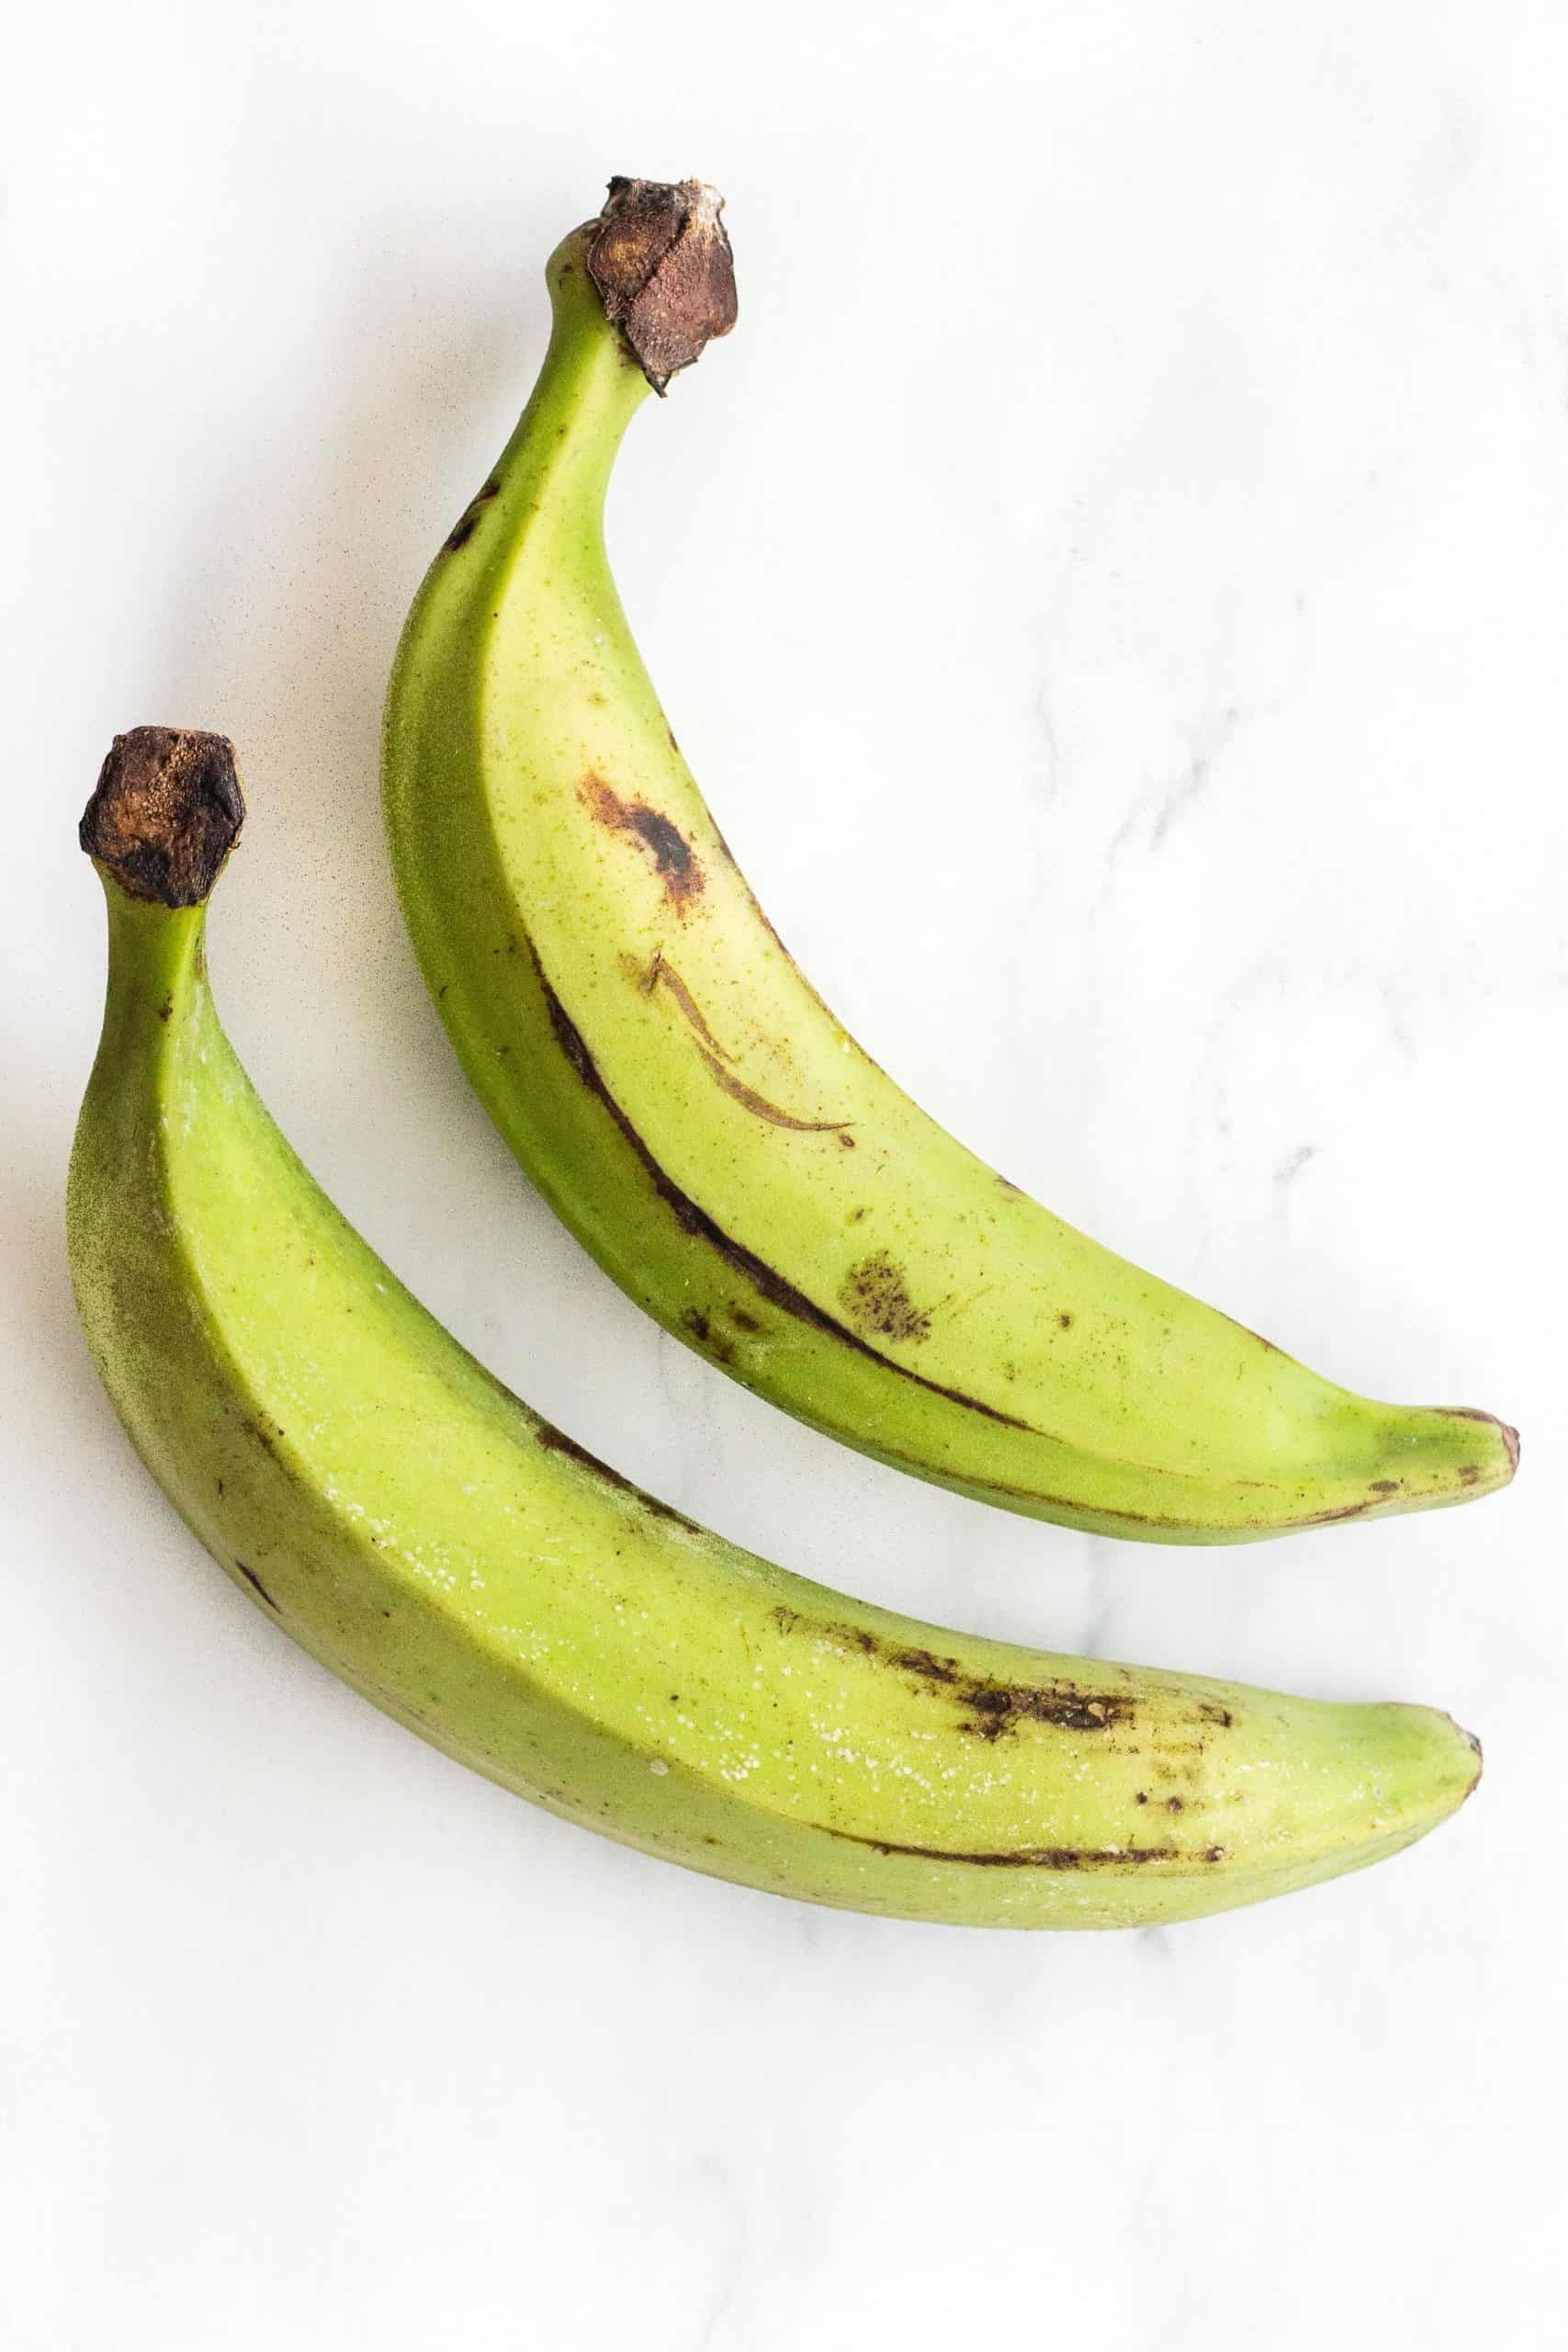 Green unripe plantains on a marble board.